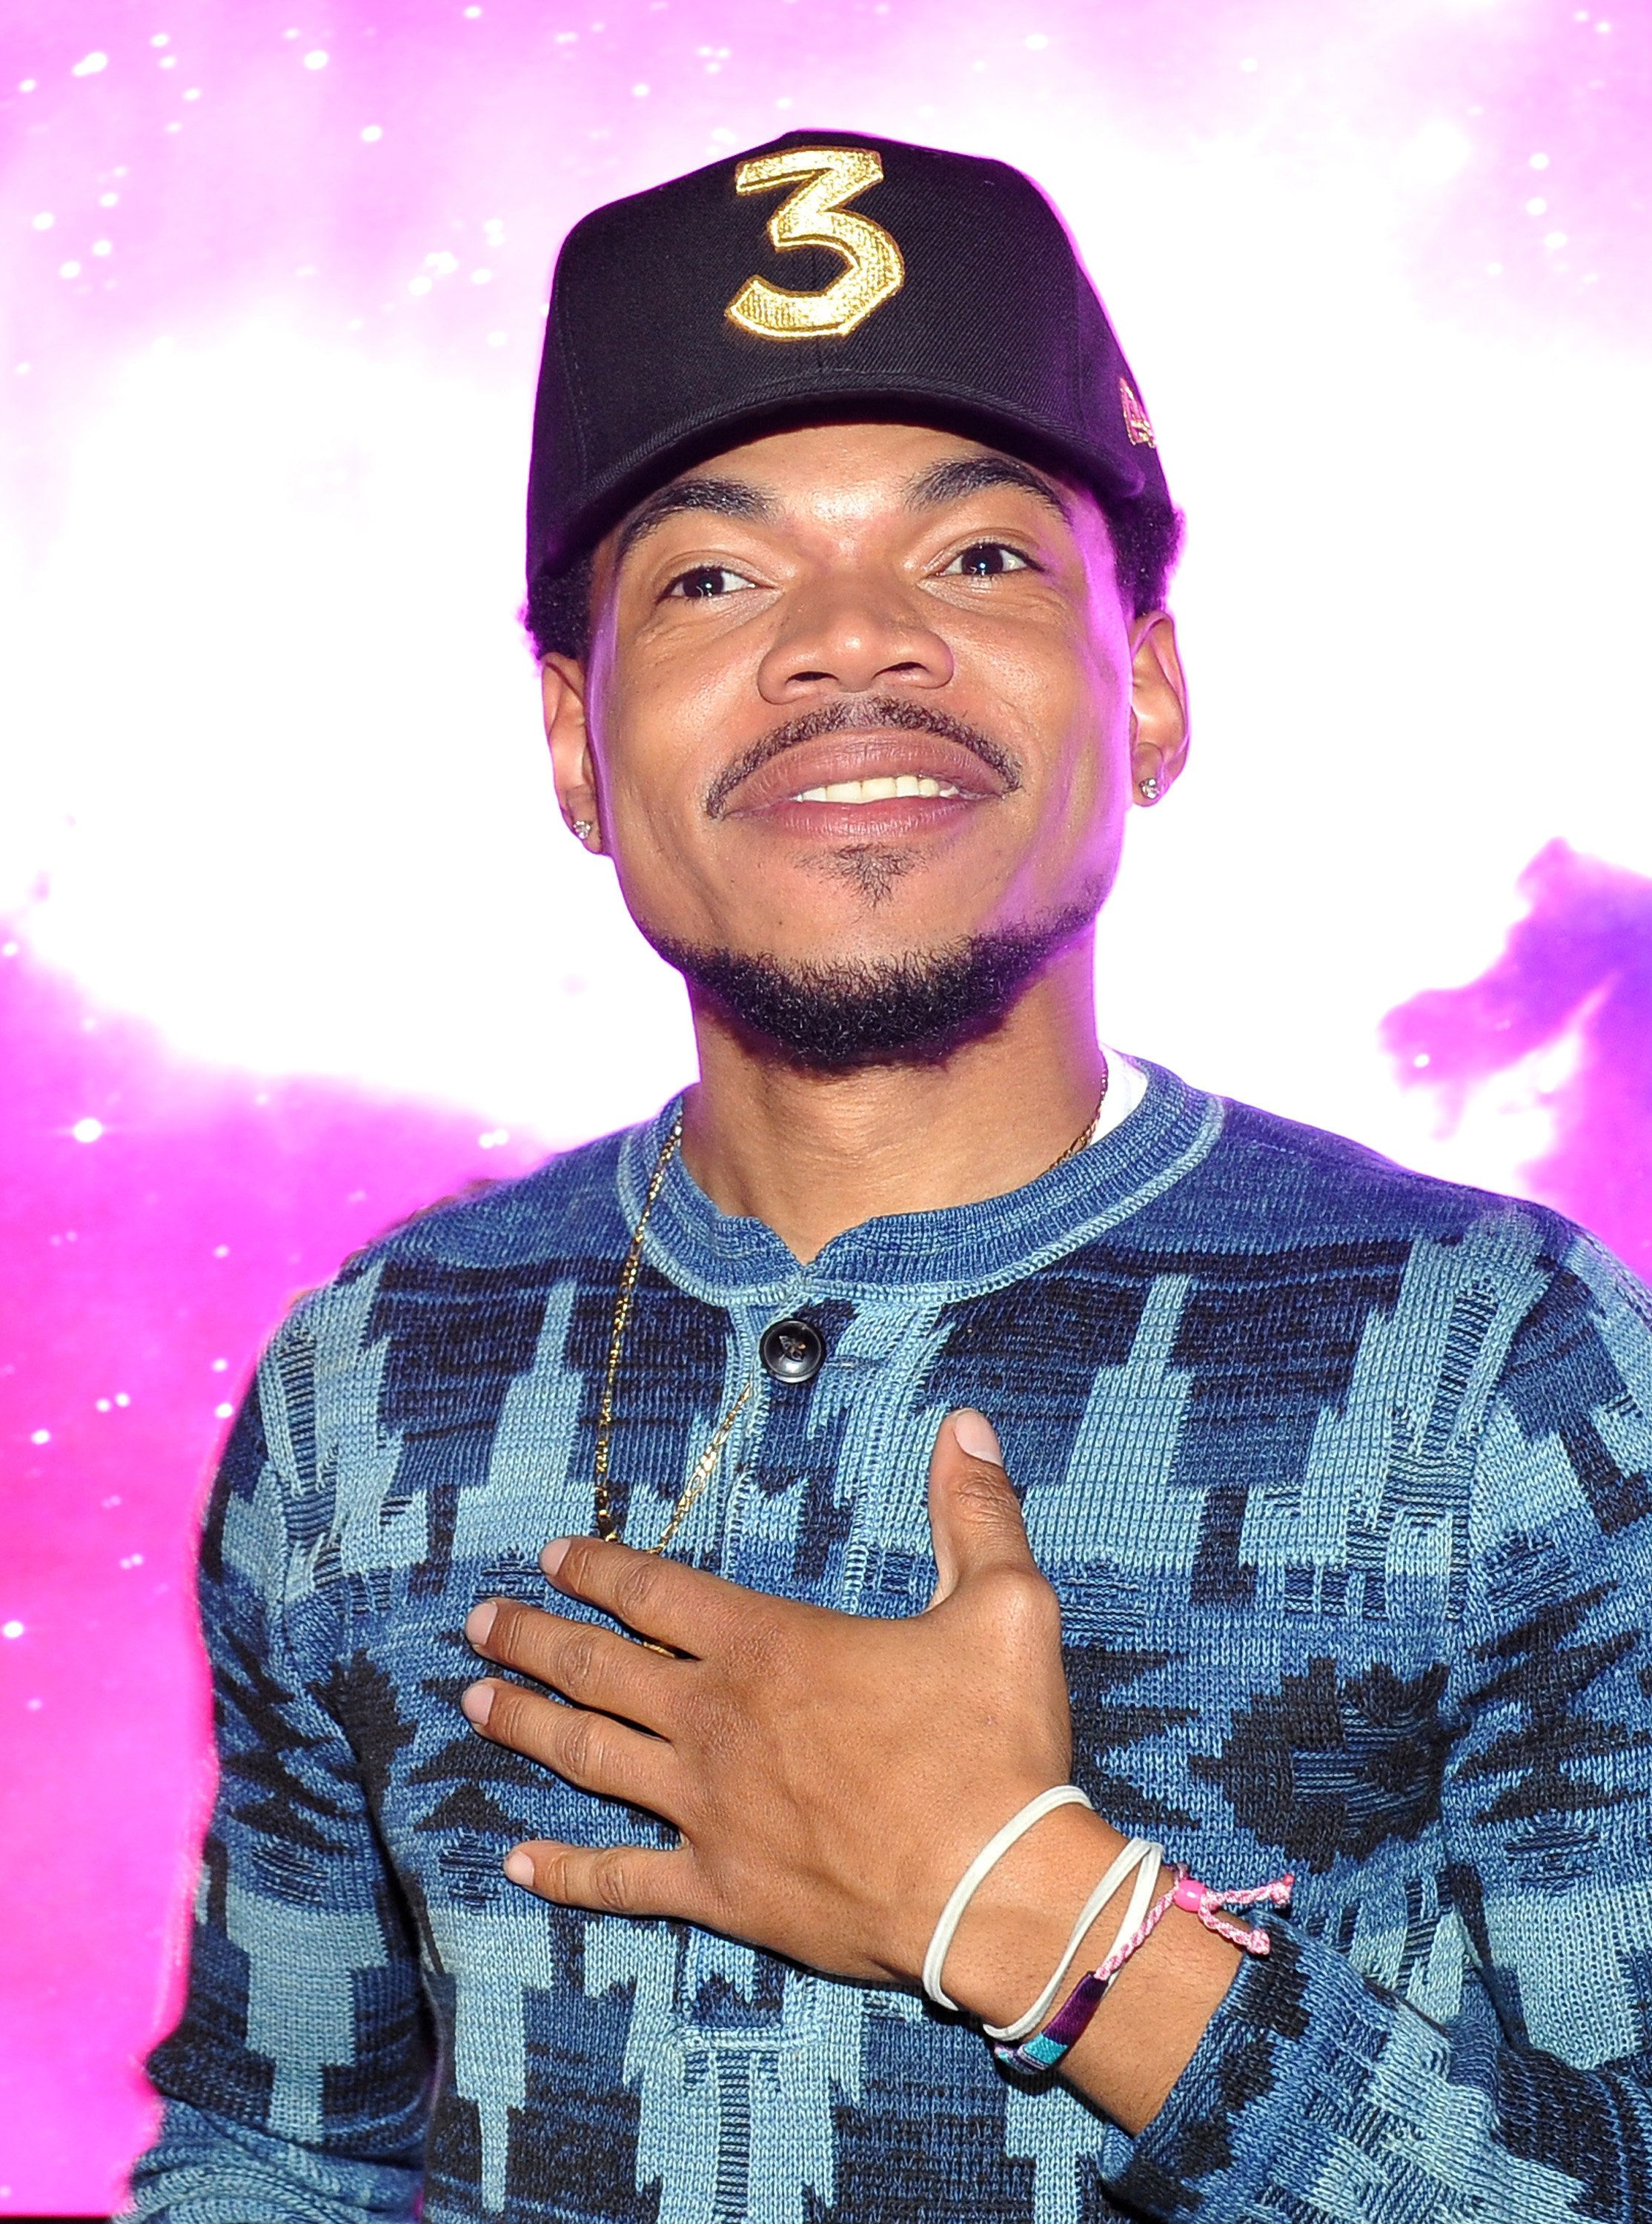 LOS ANGELES, CA - FEBRUARY 12: Chance the Rapper attends GQ and Chance The Rapper Celebrate the Grammys in Partnership with YouTube at Chateau Marmont on February 12, 2017 in Los Angeles, California.  (Photo by Donato Sardella/Getty Images for GQ)